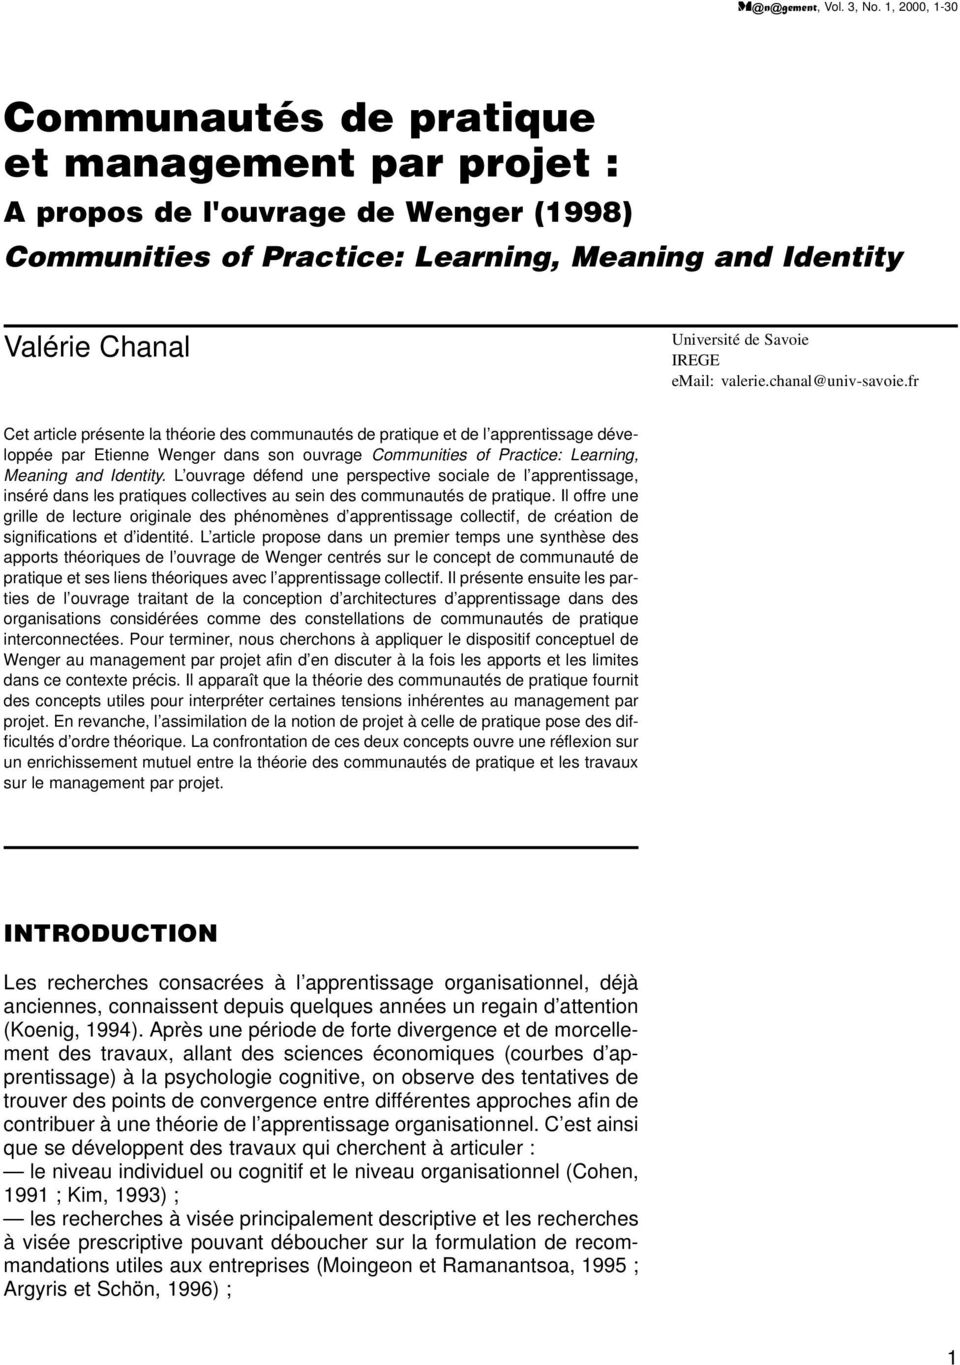 fr Cet article présente la théorie des communautés de pratique et de l apprentissage développée par Etienne Wenger dans son ouvrage Communities of Practice: Learning, Meaning and Identity.